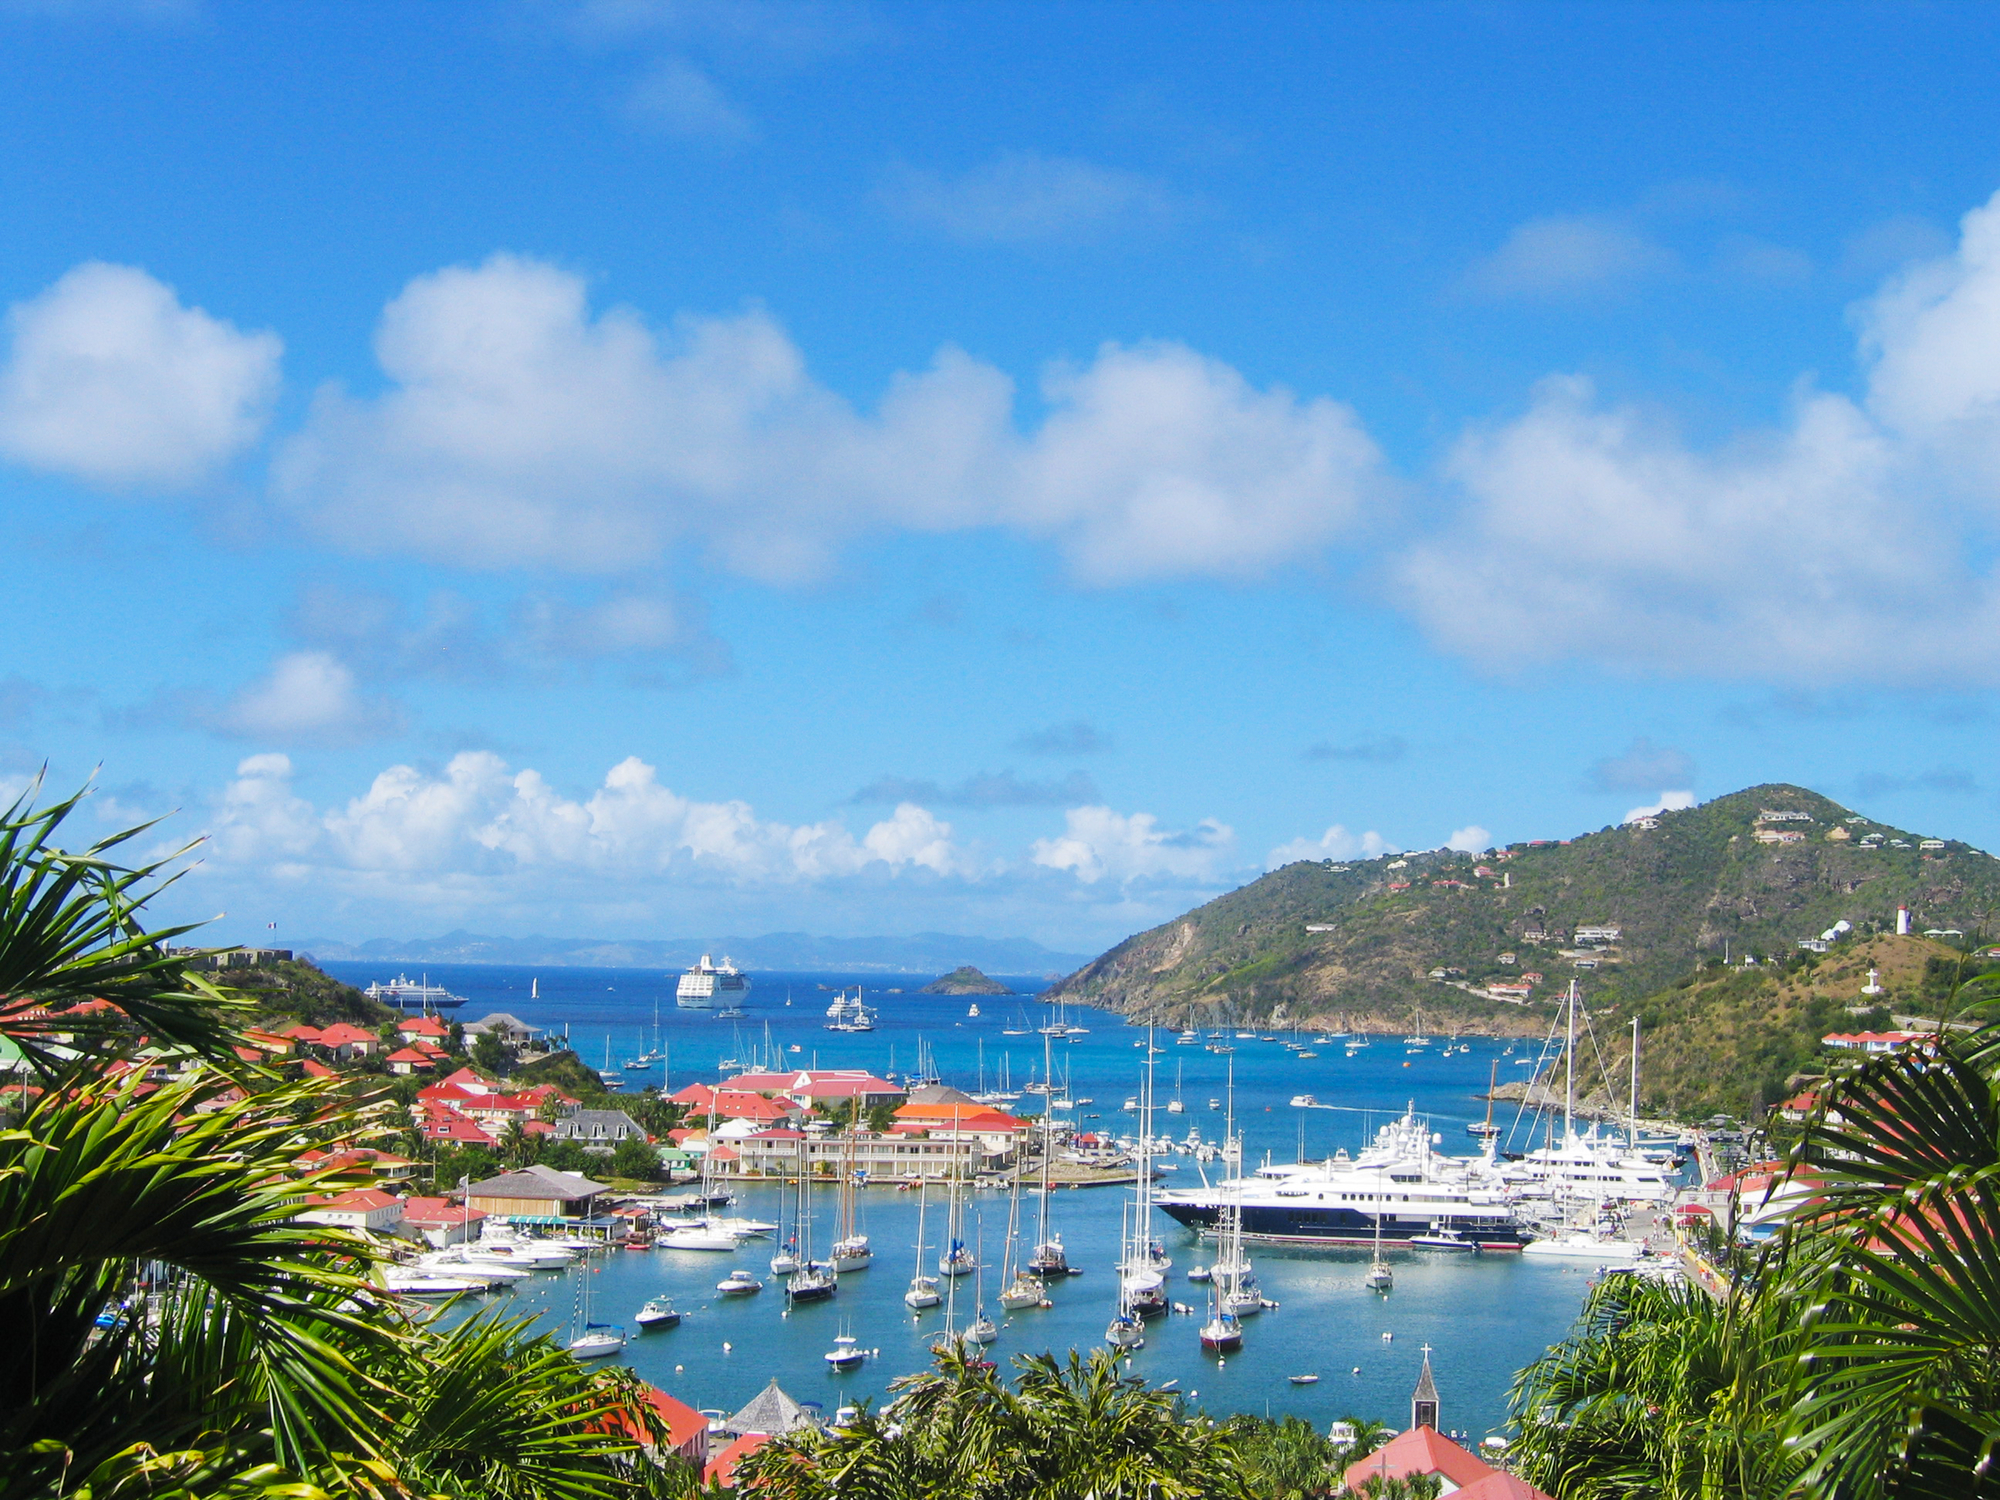 stbarts_gustavia_harbour.jpg. St. Barts